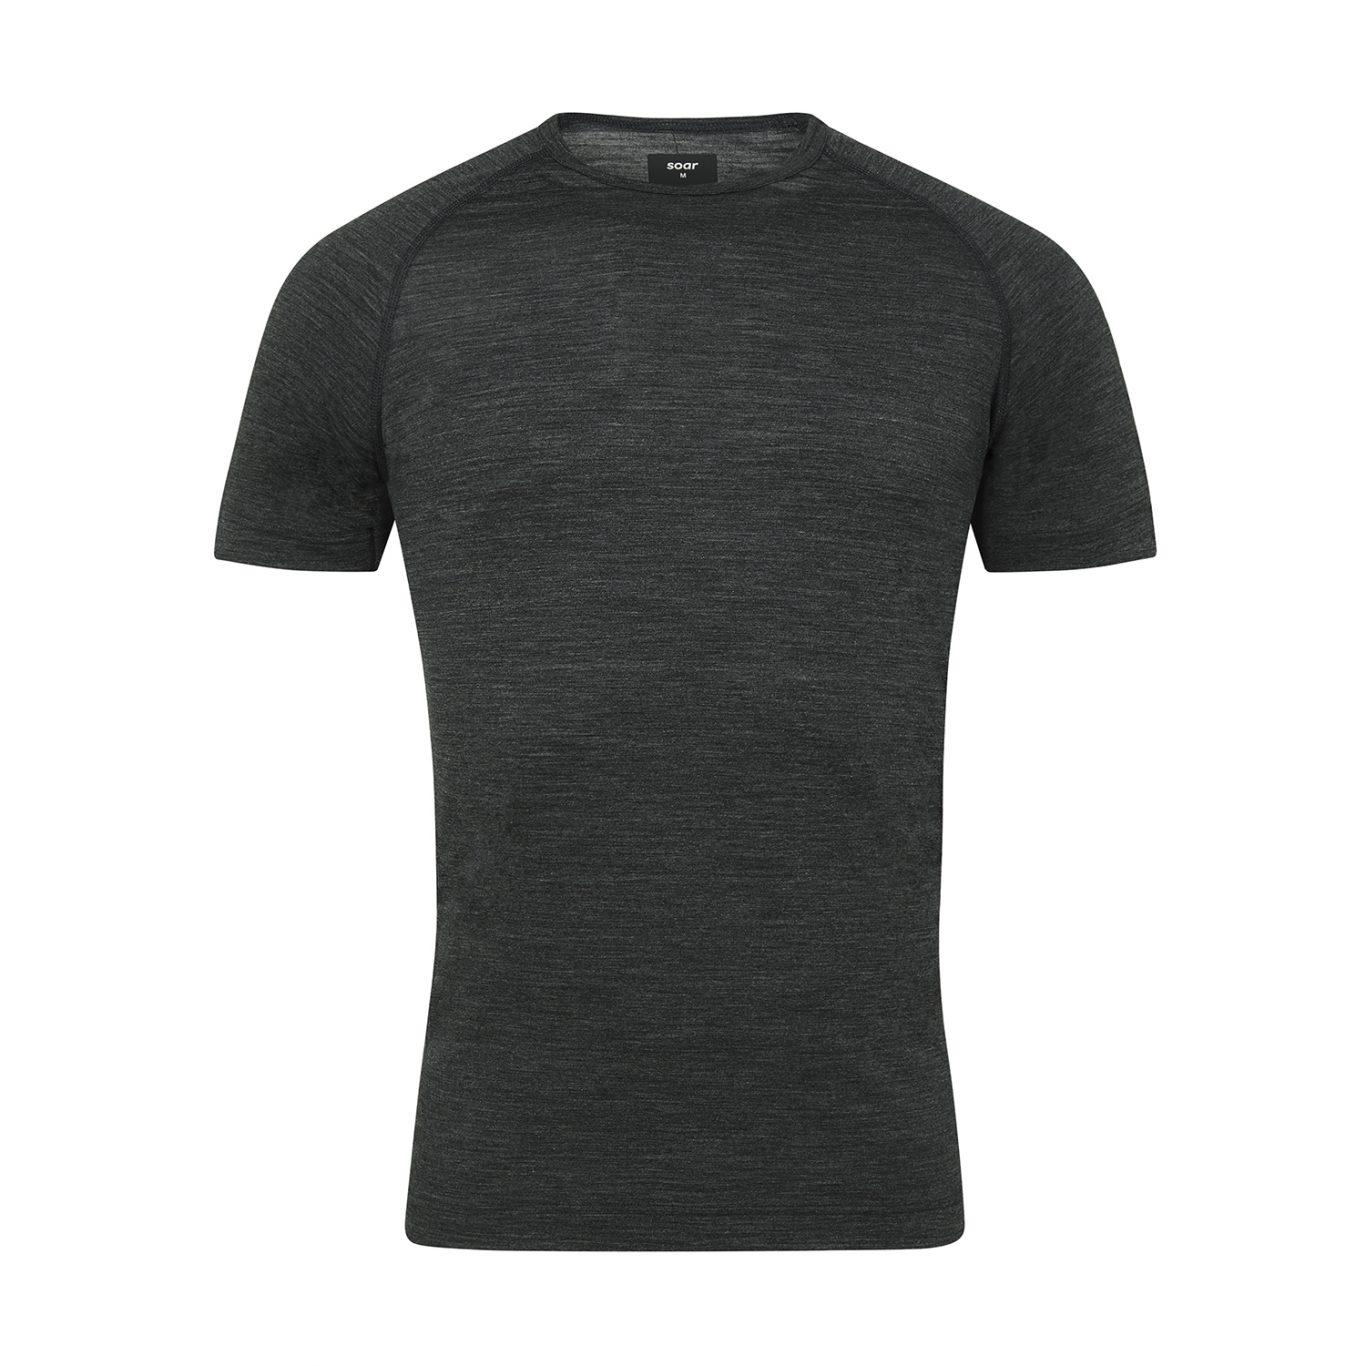 (c) Soar Merino & Silk T-Shirt Base